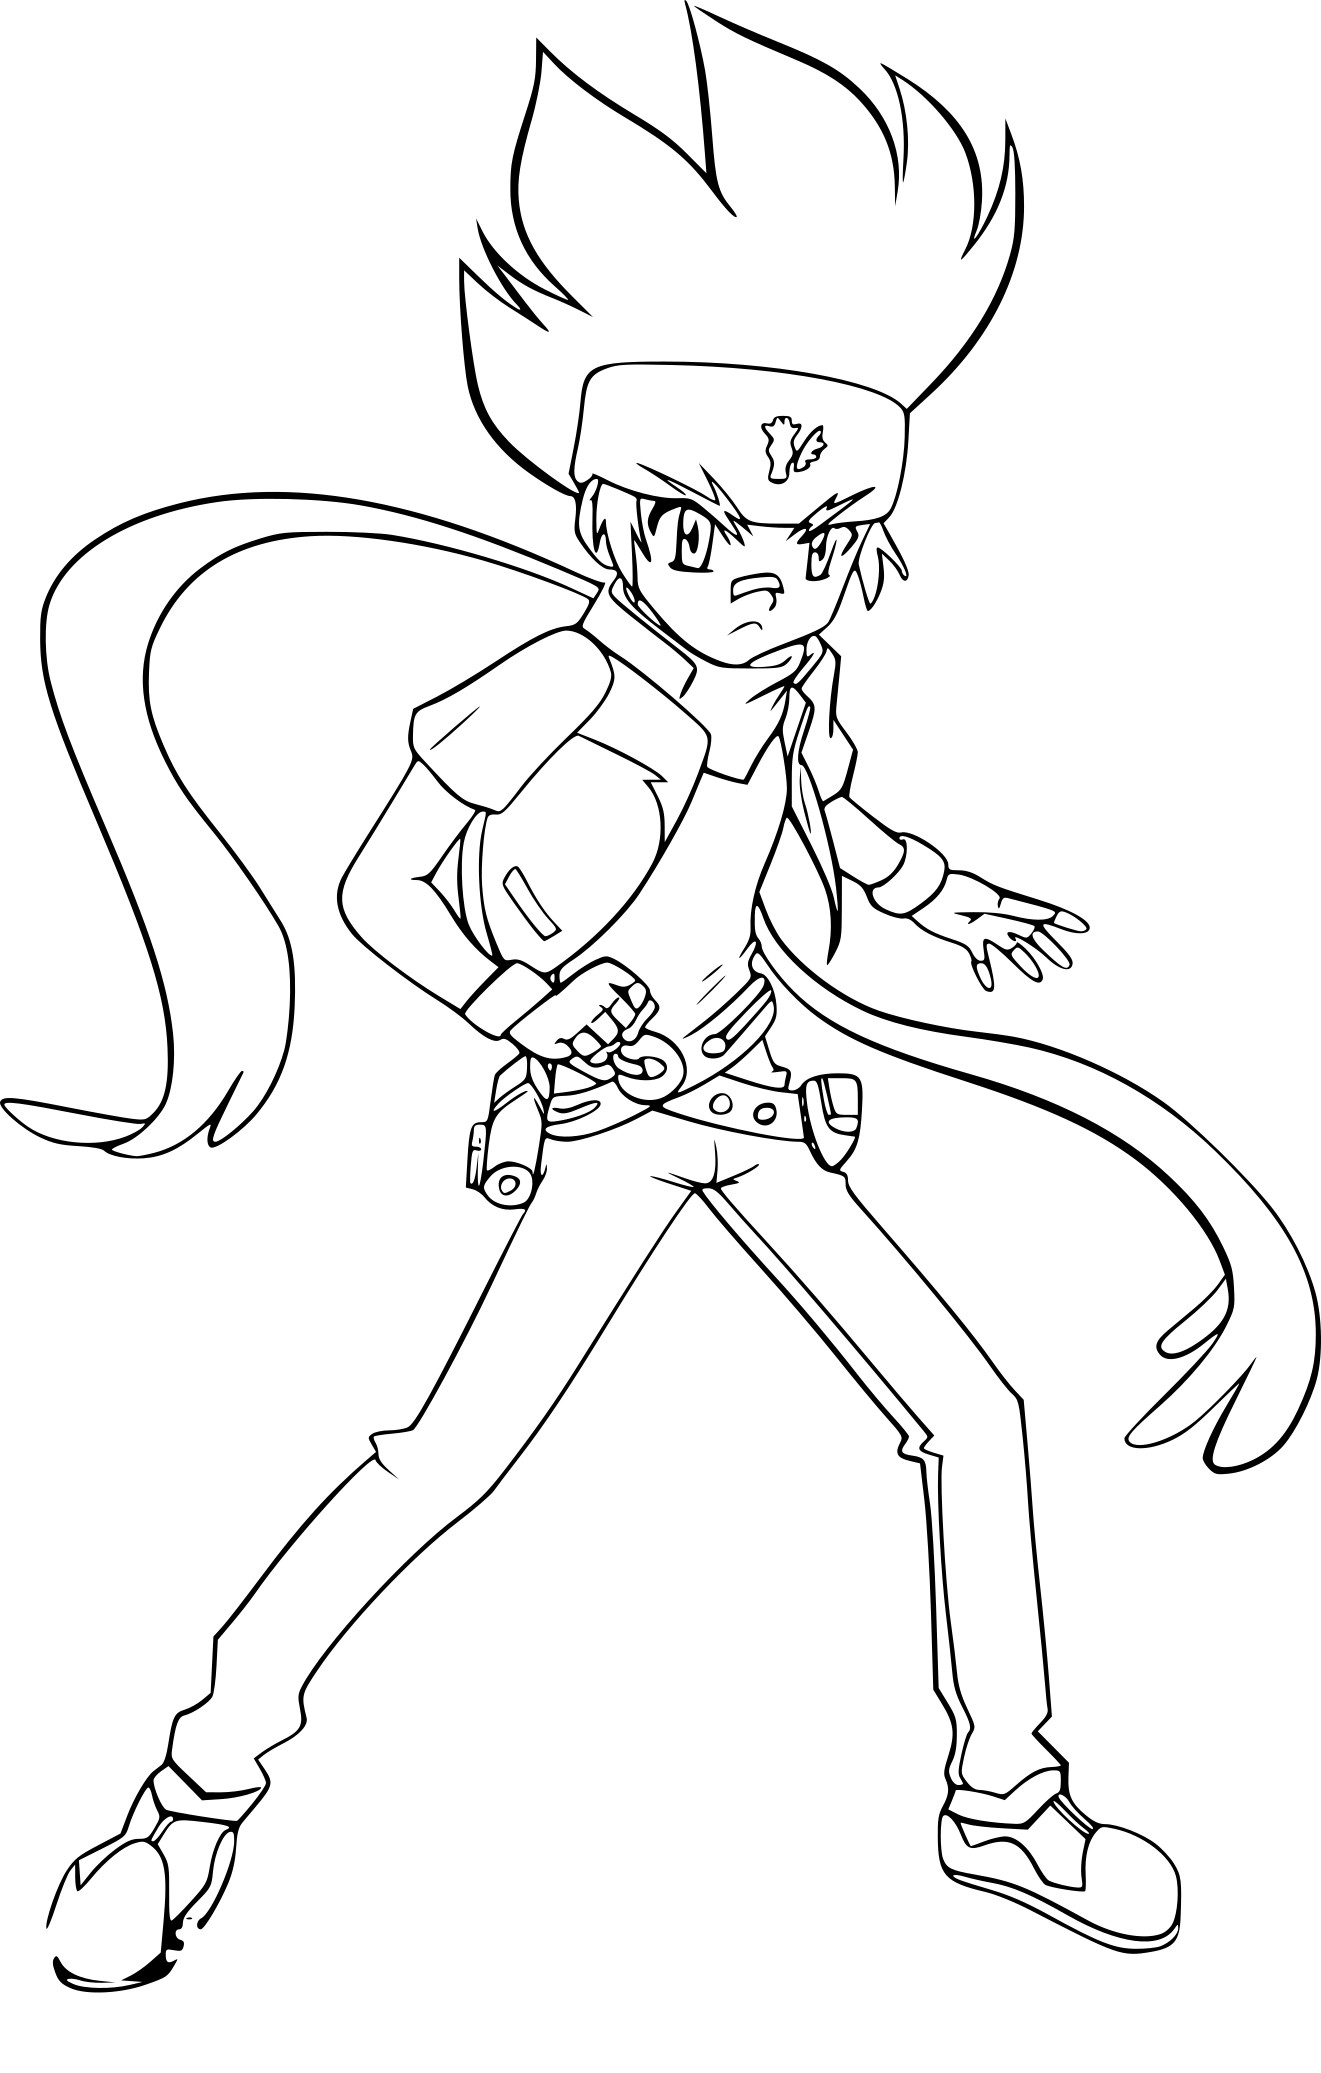 Coloriage beyblade ginga imprimer sur coloriages info - Dessin beyblade ...